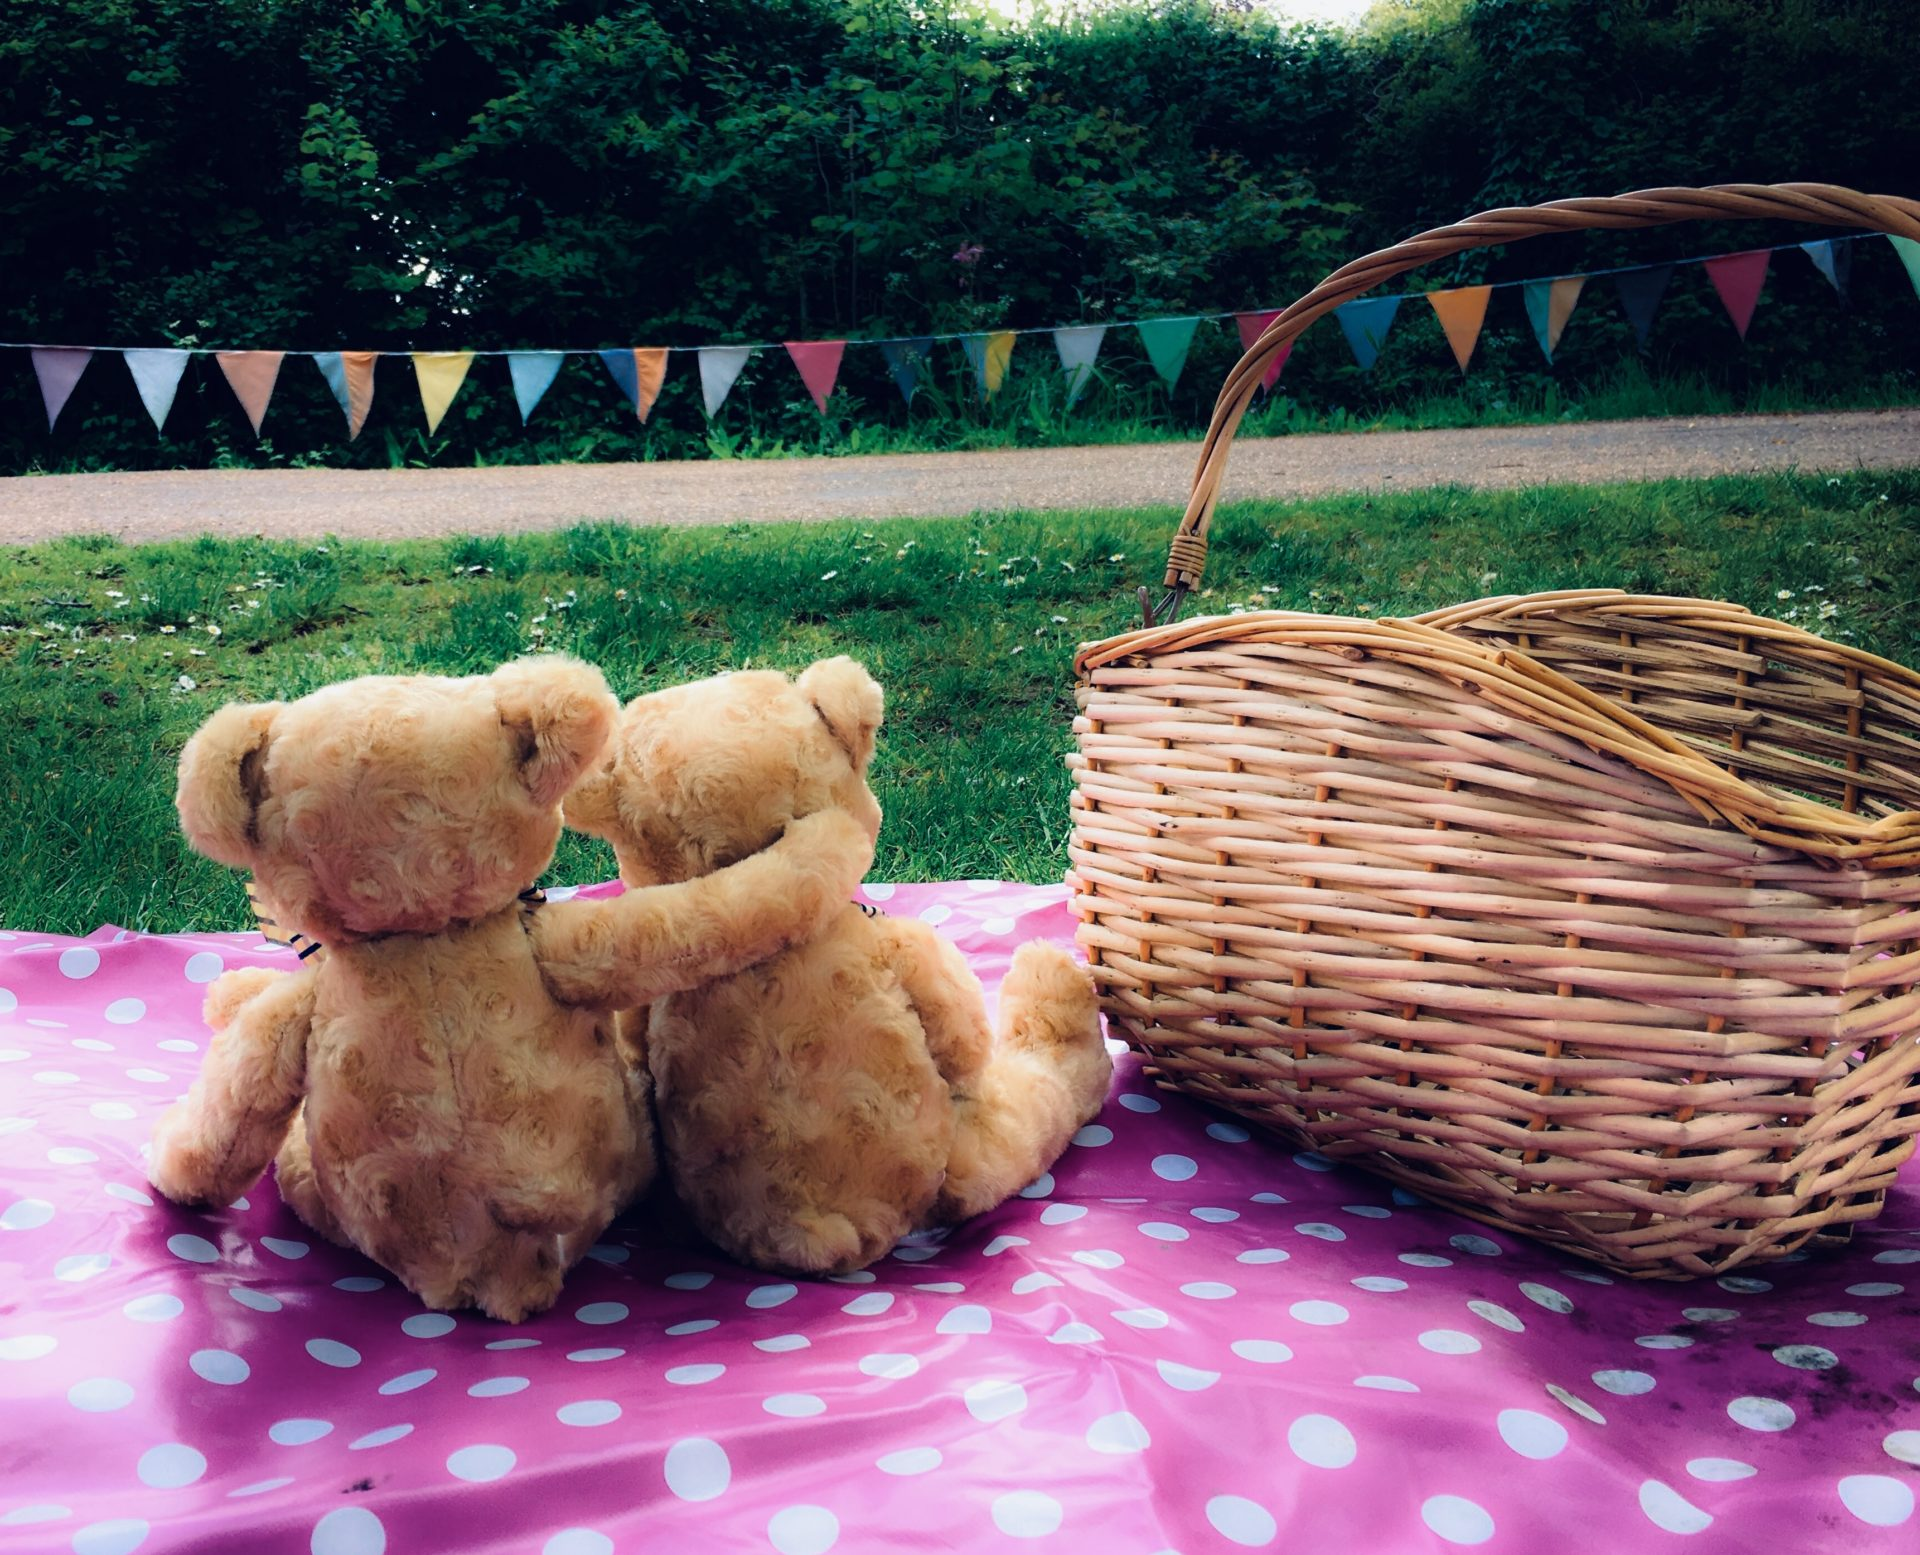 It's picnic time for teddy bears at Avoncroft this Bank Holiday!